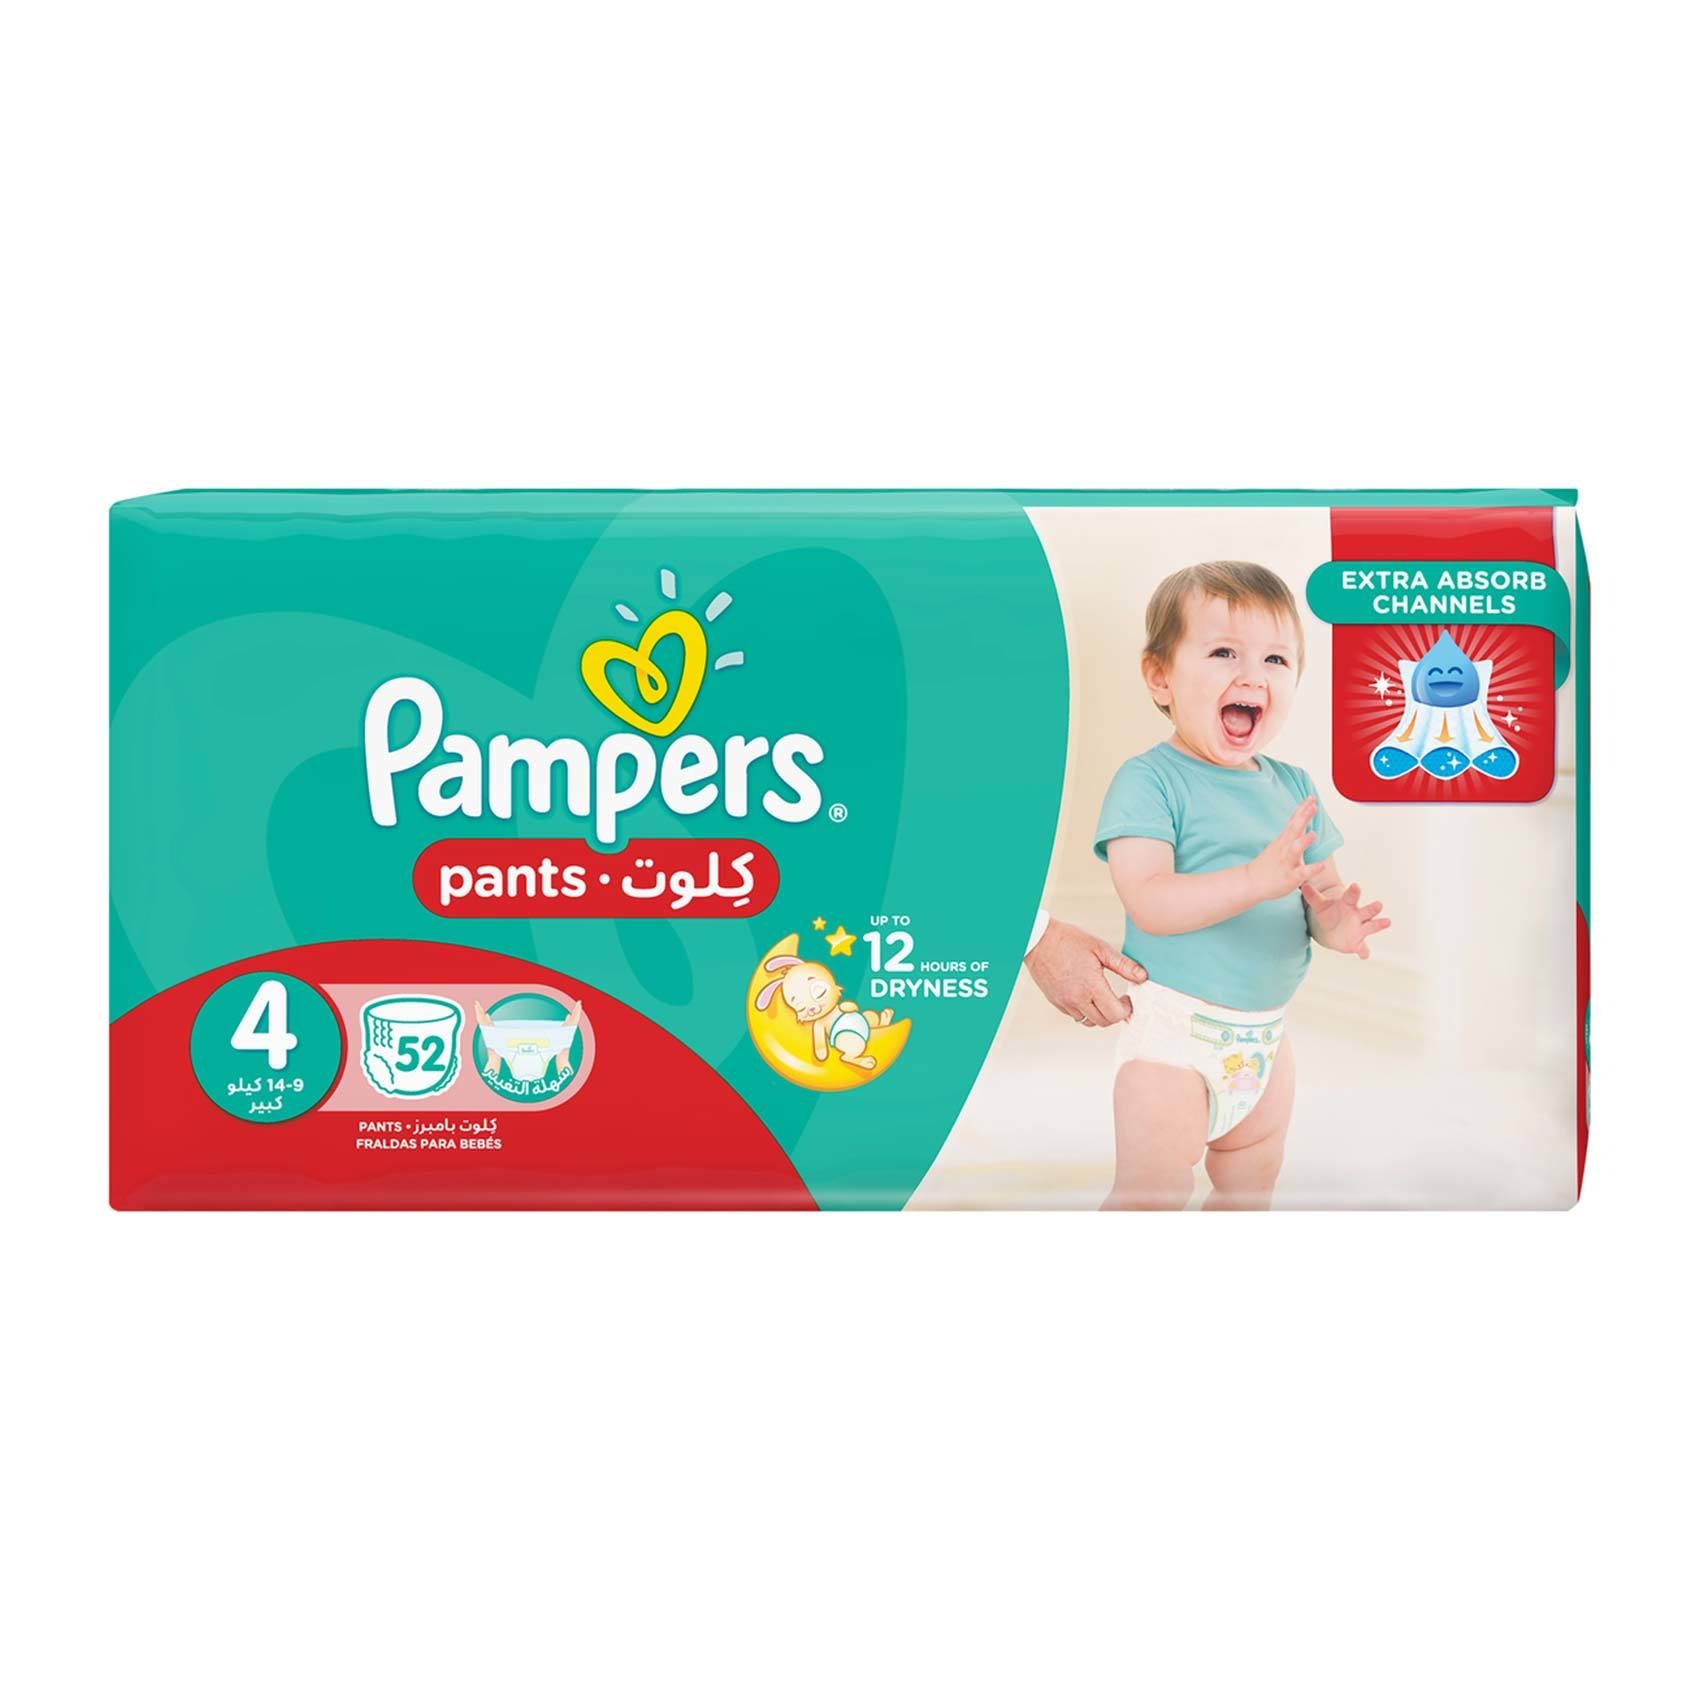 Buy Pampers Pants Diapers Size 4 Maxi Jumbo Pack 52 Diapers Online Shop Baby Products On Carrefour Saudi Arabia